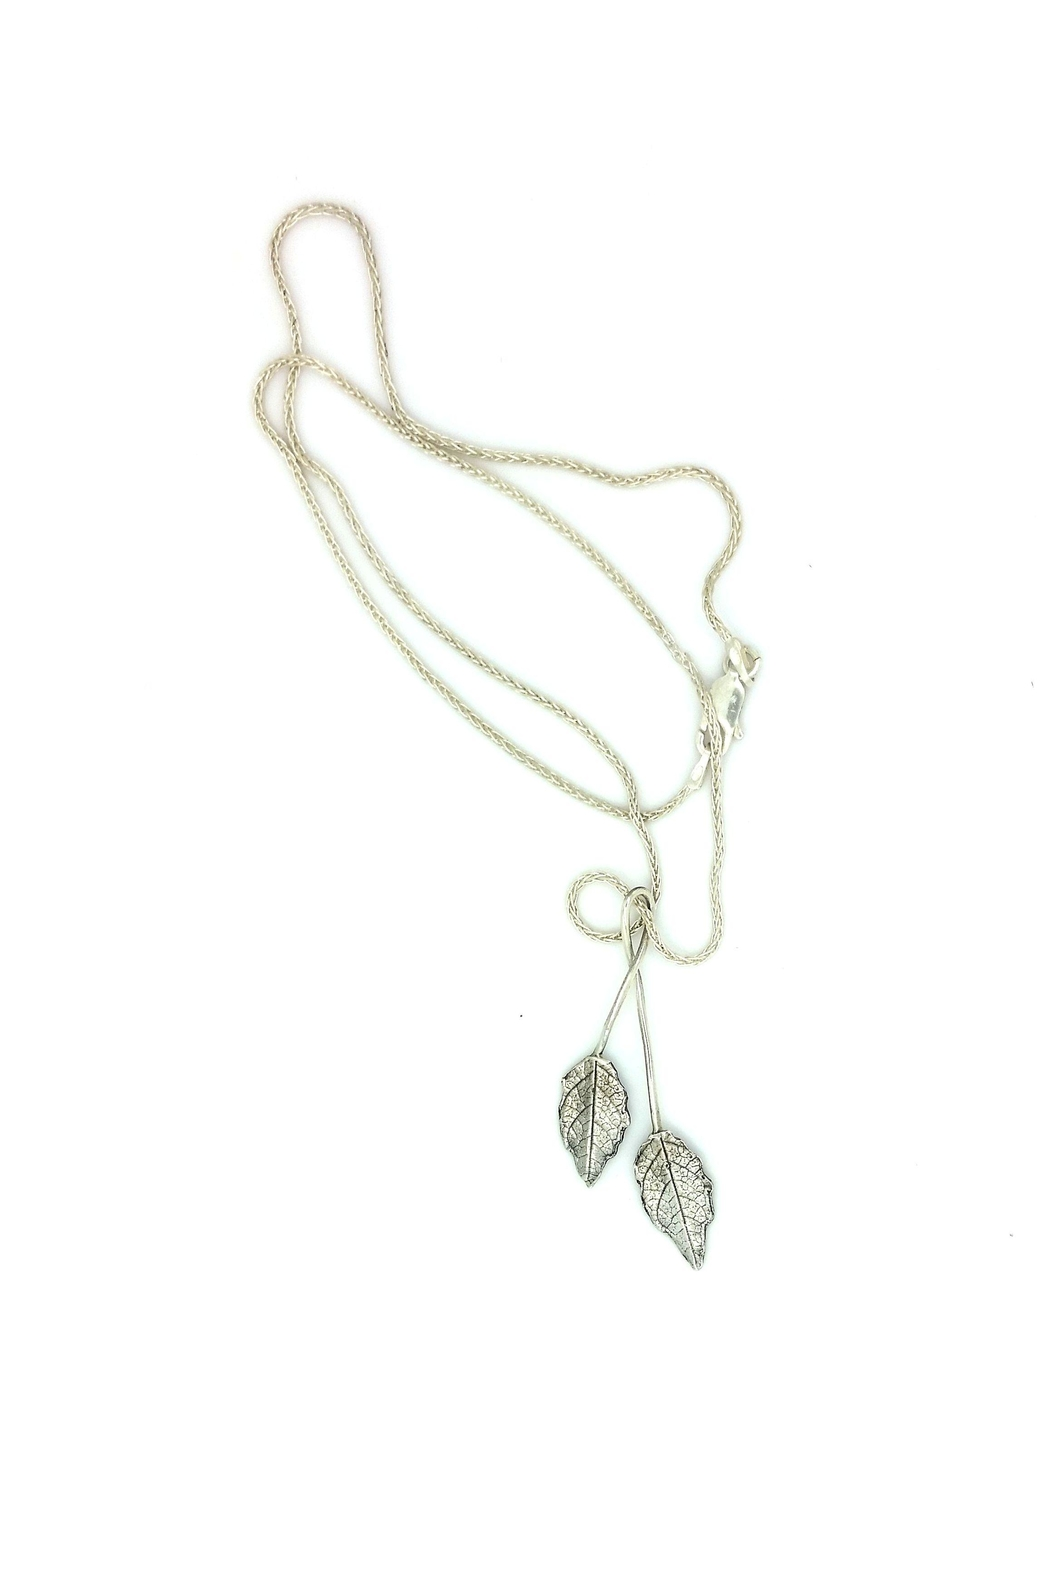 buy silver pendant highgrove leaf shop the gardens beech royal